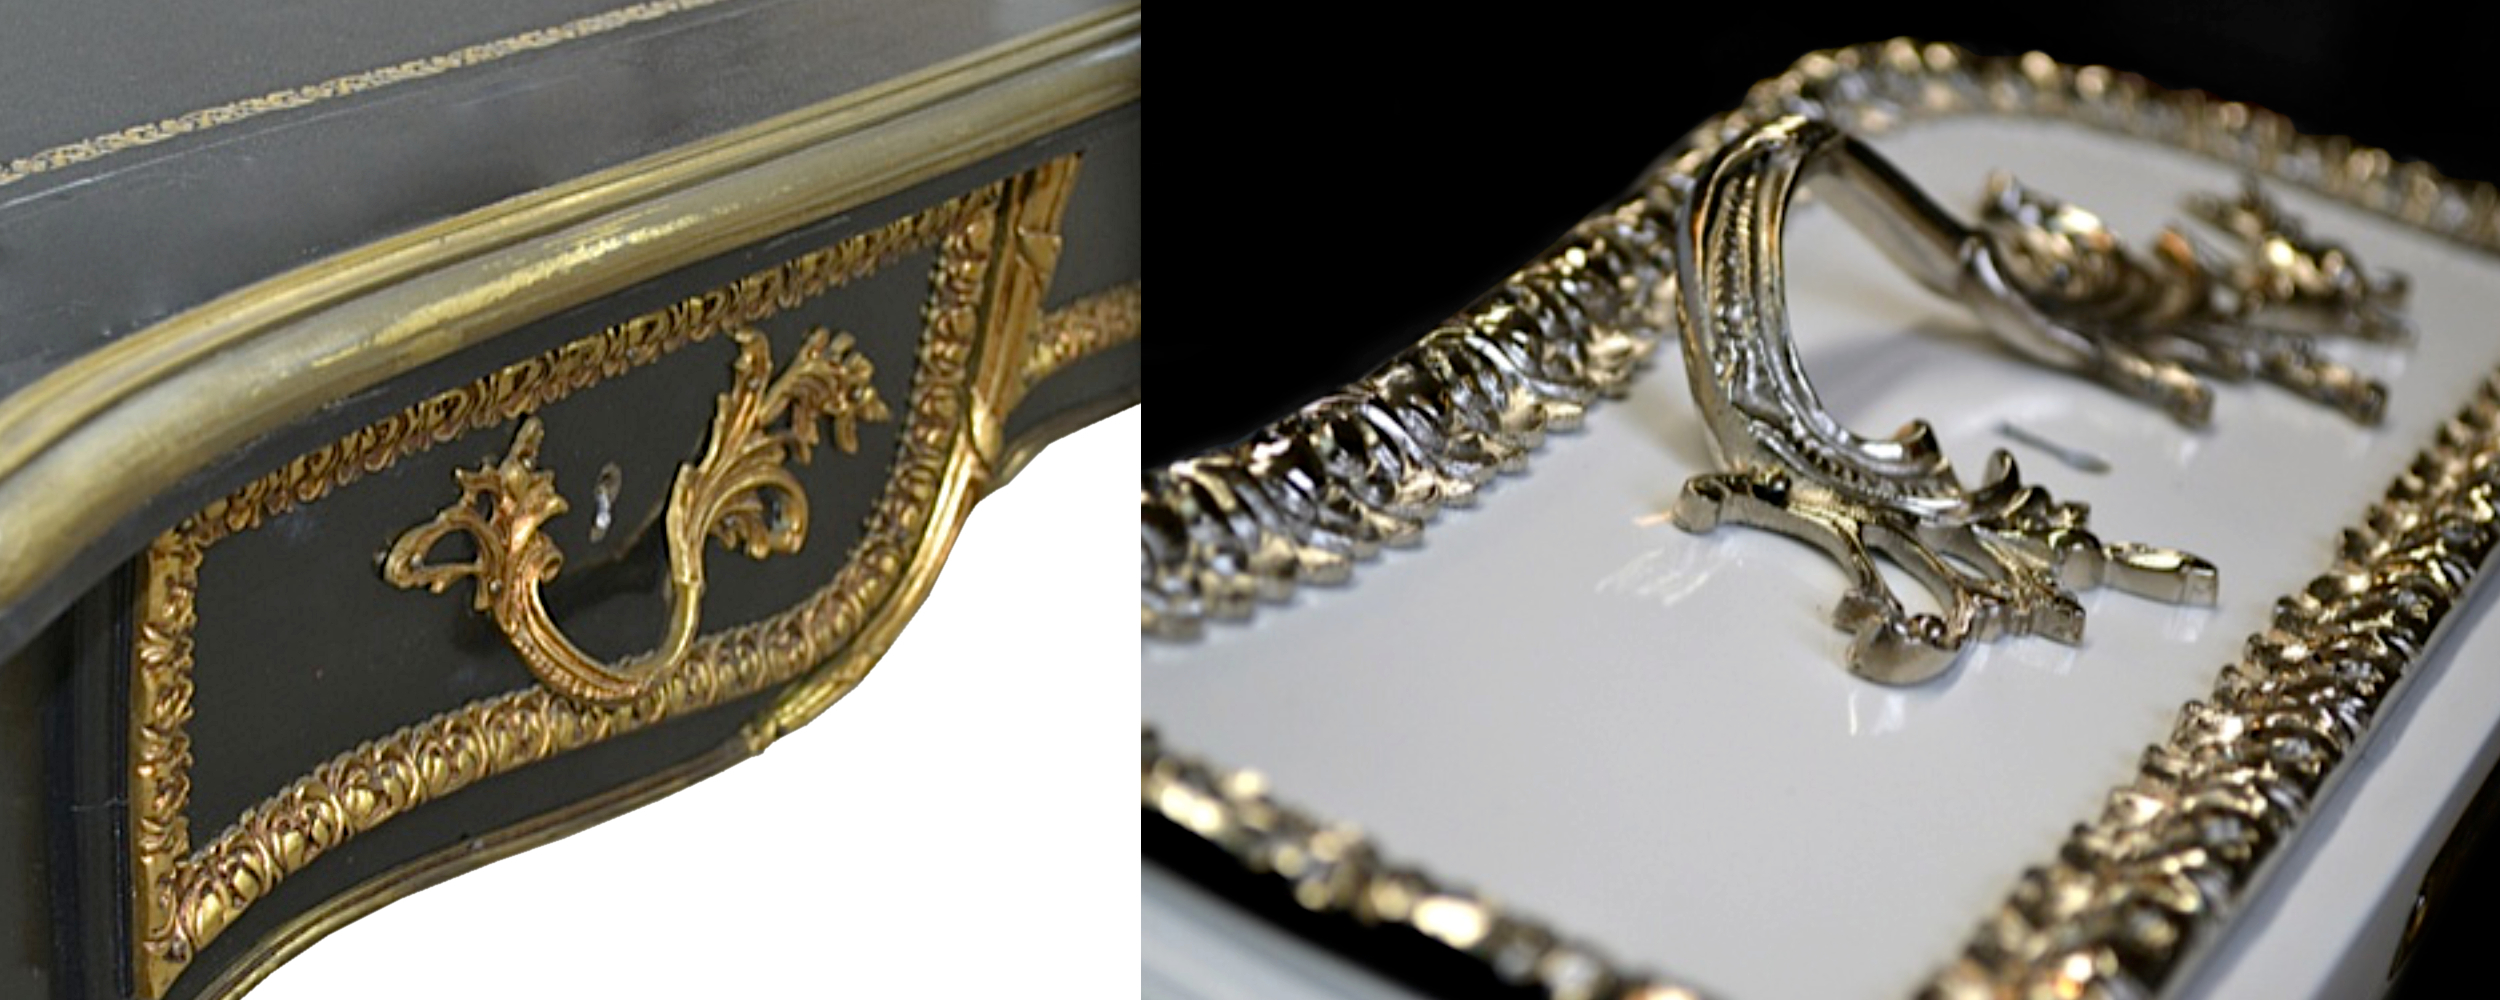 Restoratio-Before-After-Table-Drawer-Gilding.jpg